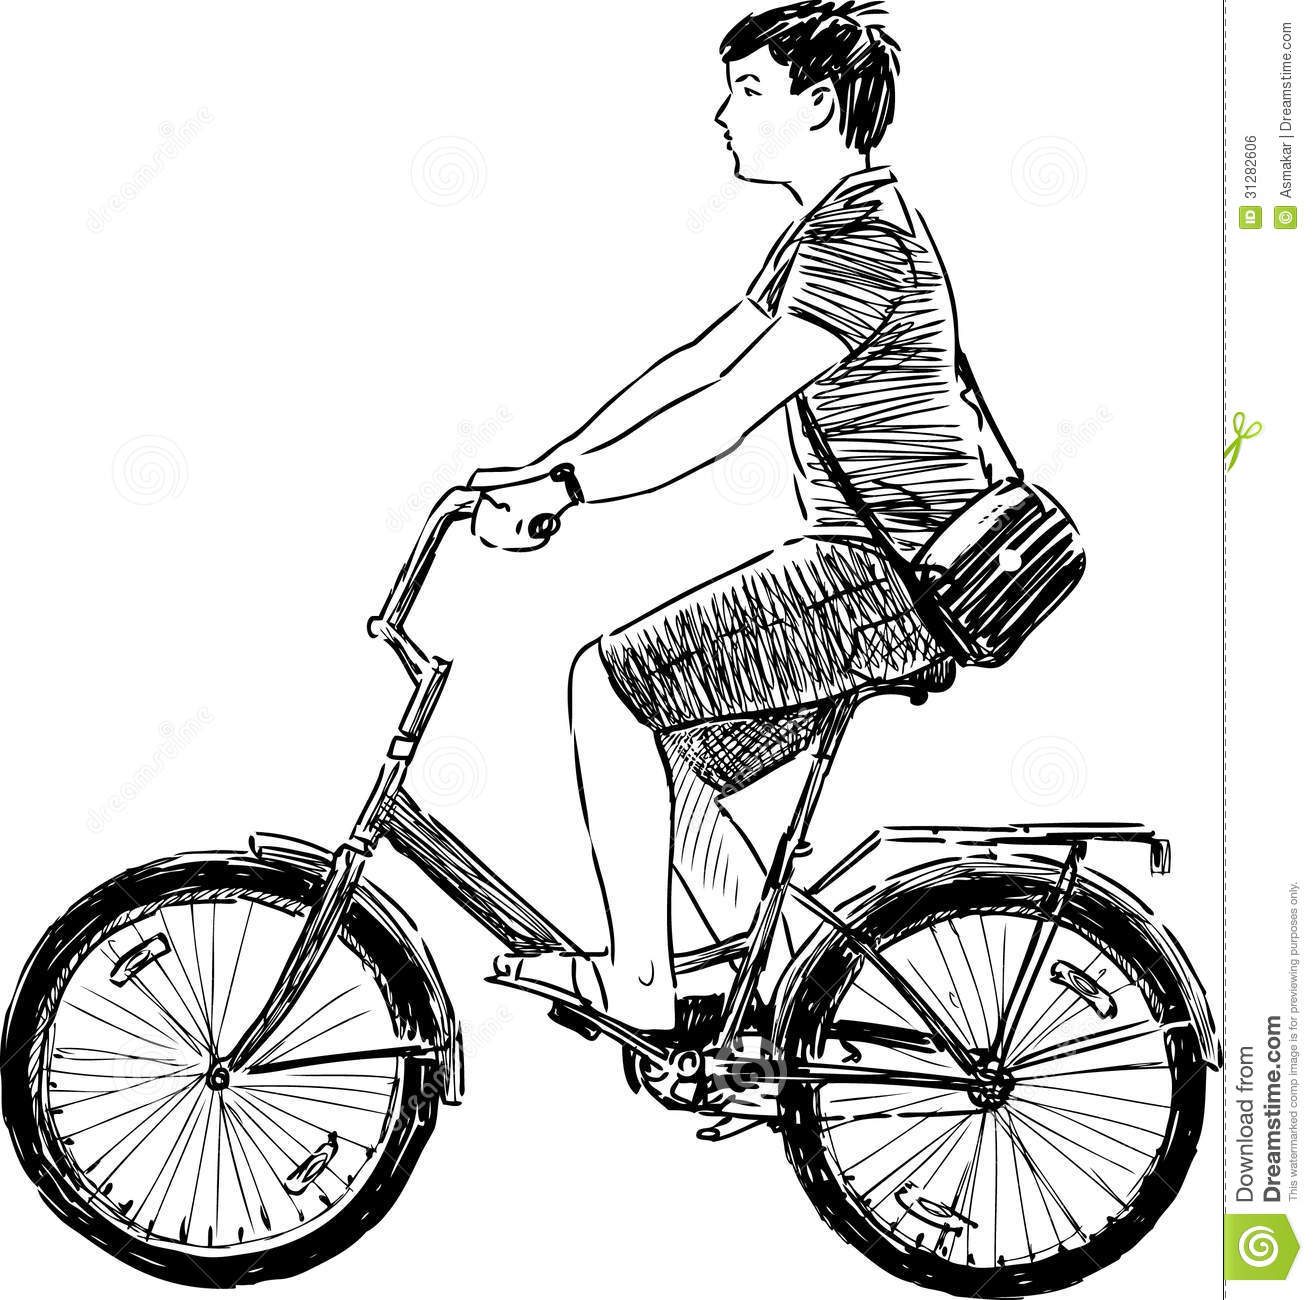 Ado montant une bicyclette photo stock image du croquis - Bicyclette dessin ...